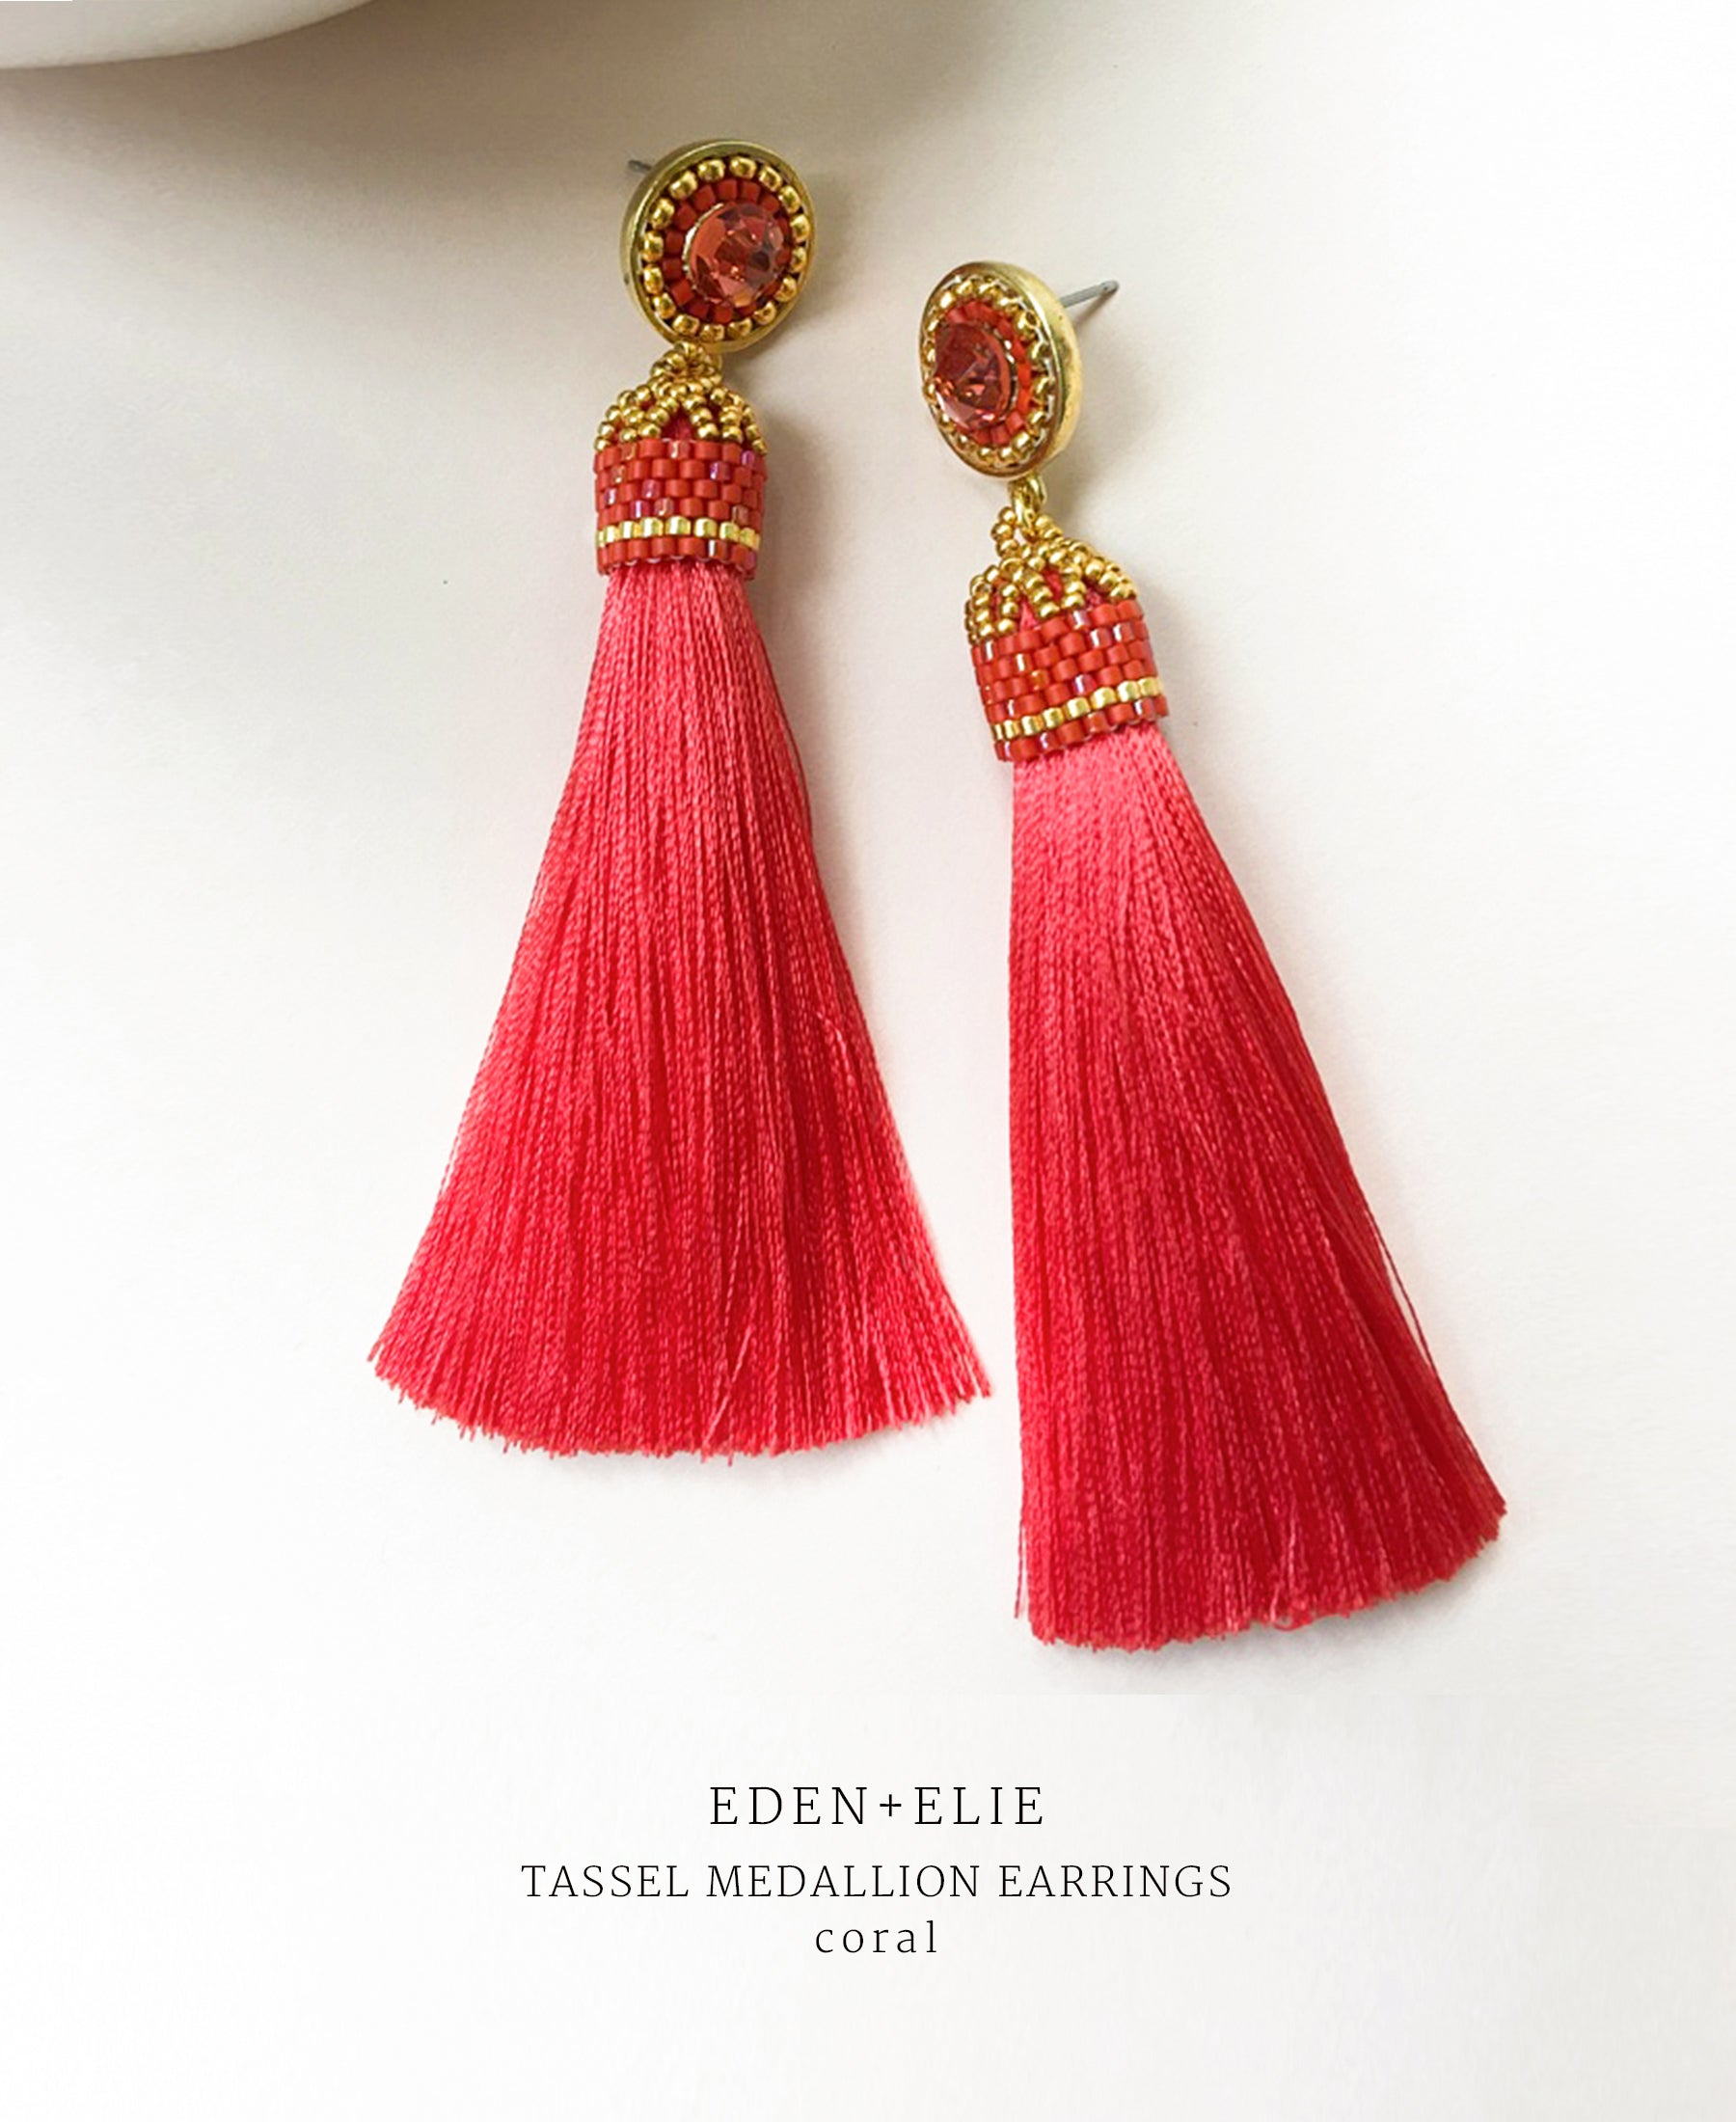 EDEN + ELIE silk tassel statement earrings - coral red